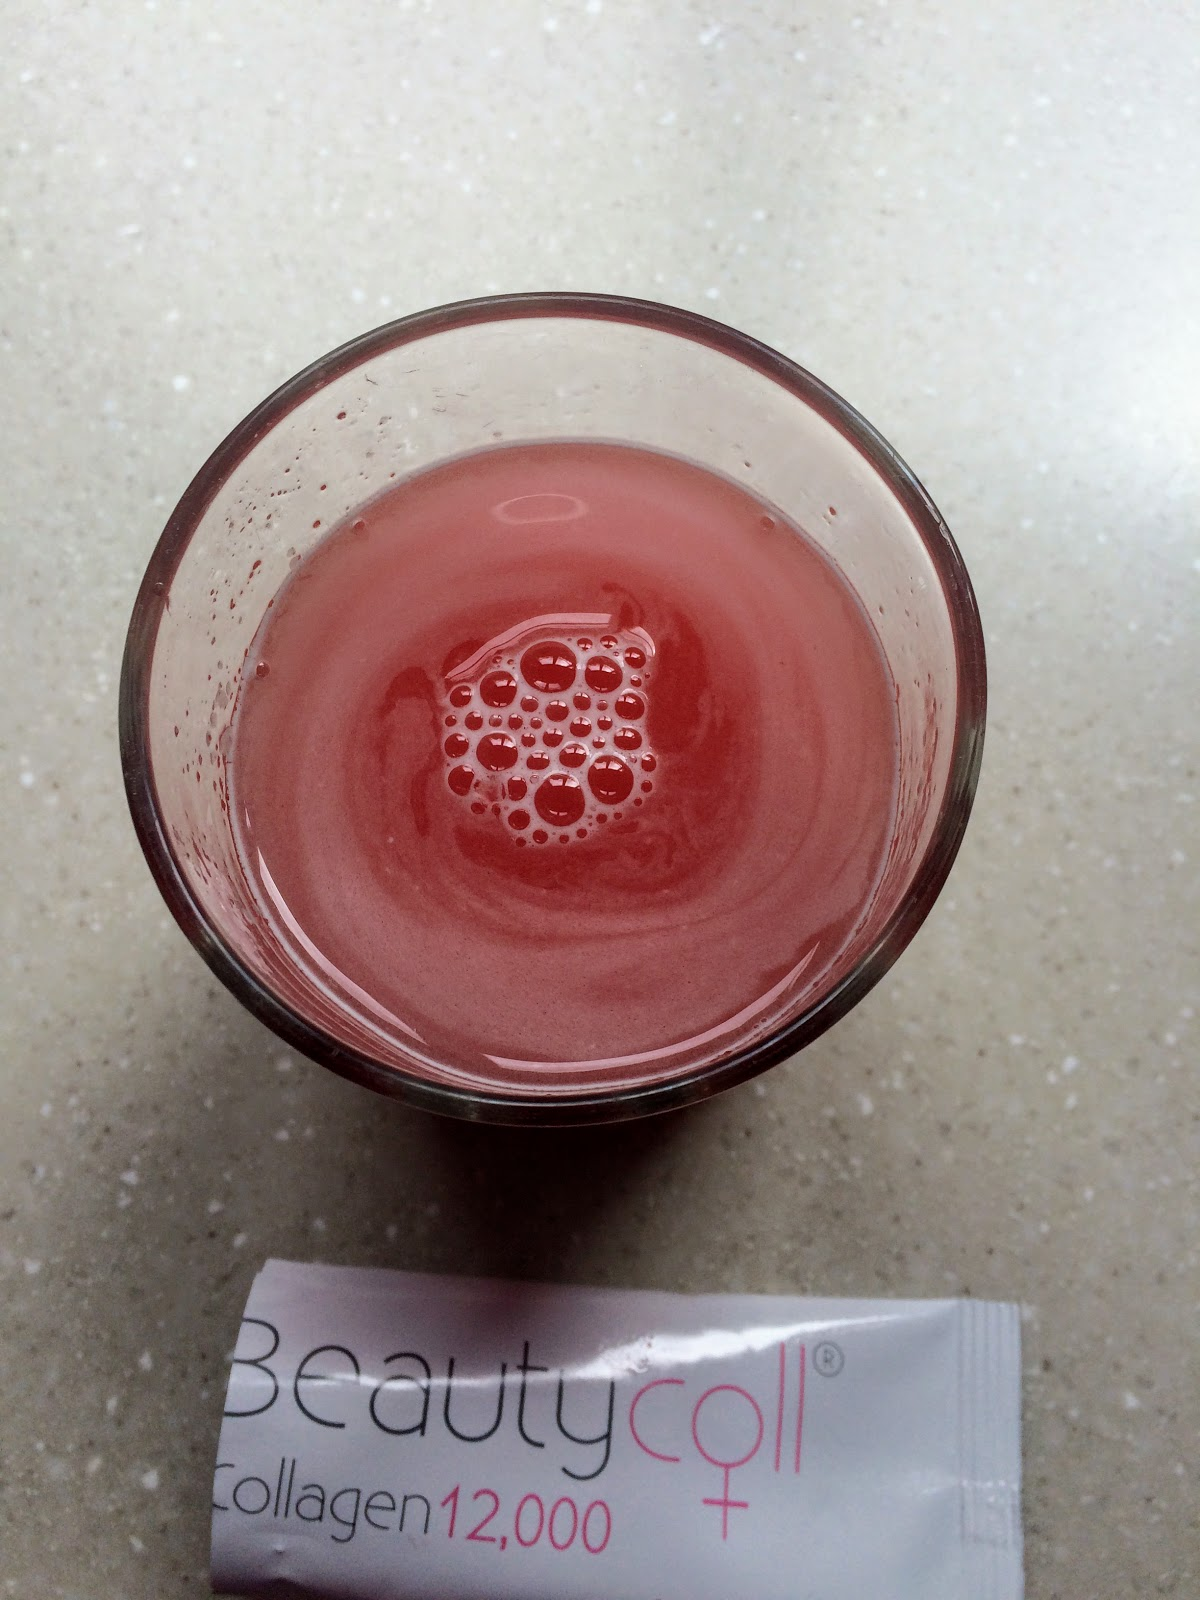 Beautycoll collagen drink with water added fully mixed